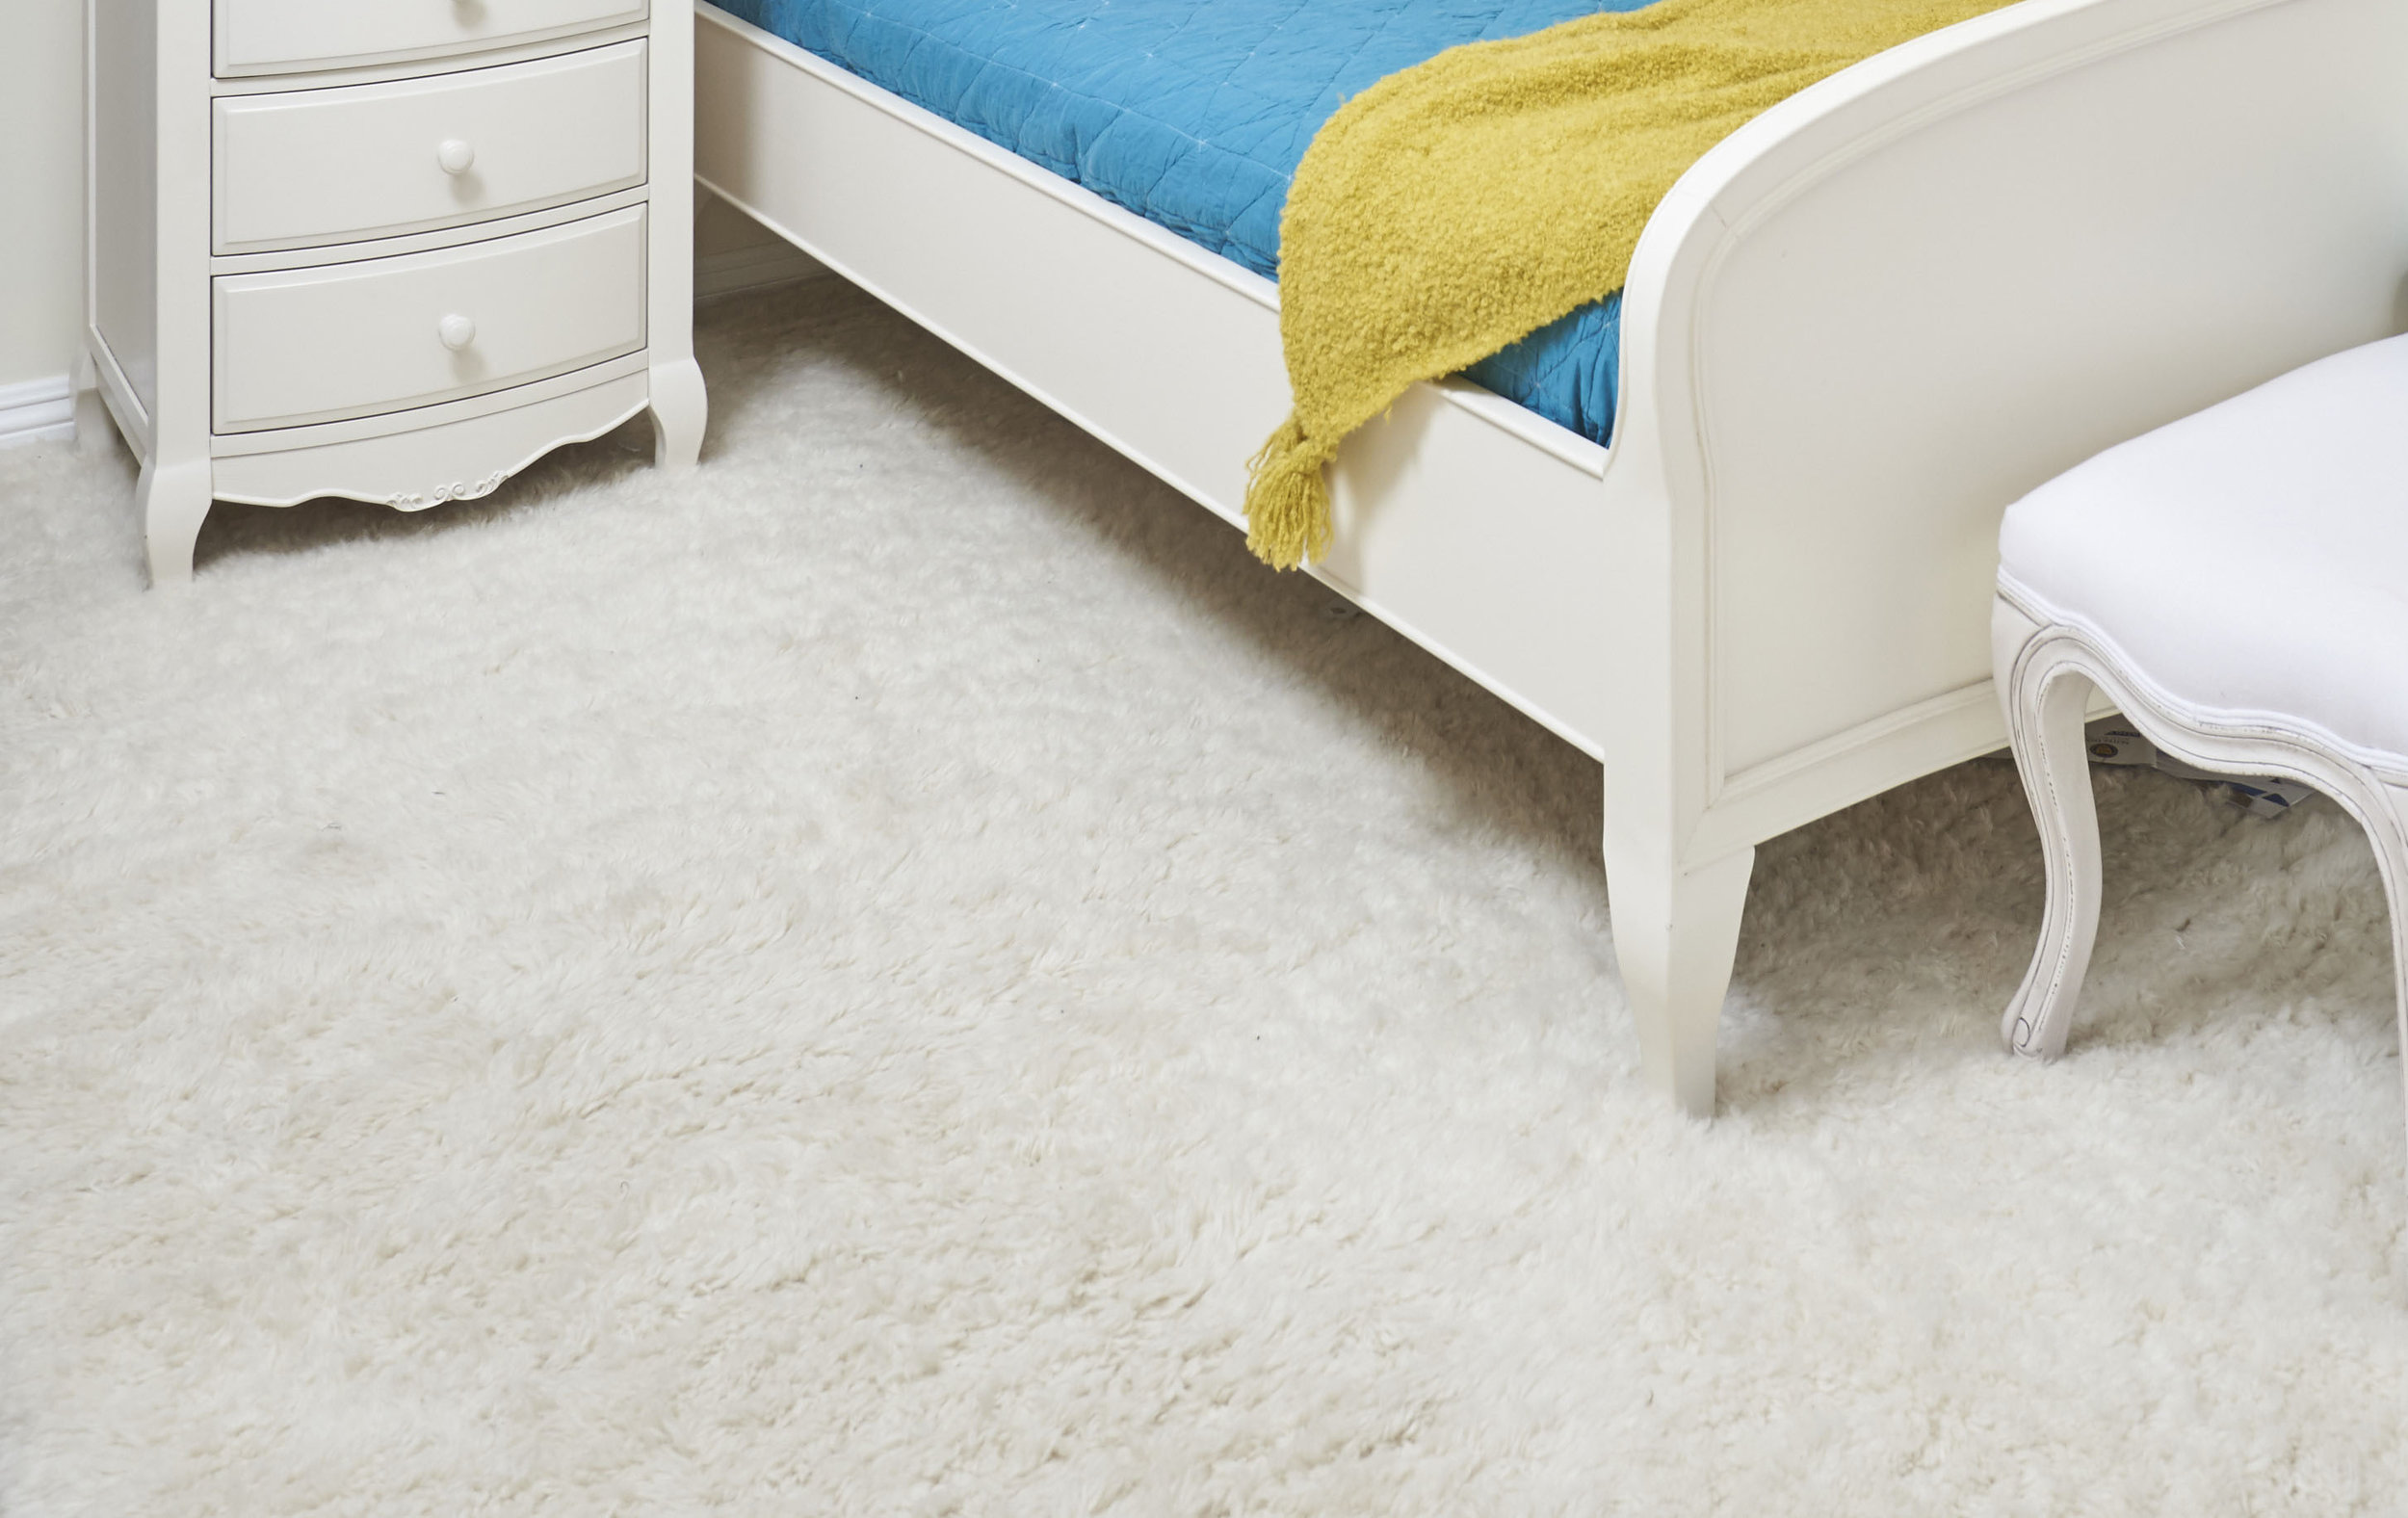 Sarah-barnard-design-soft-carpet.jpg